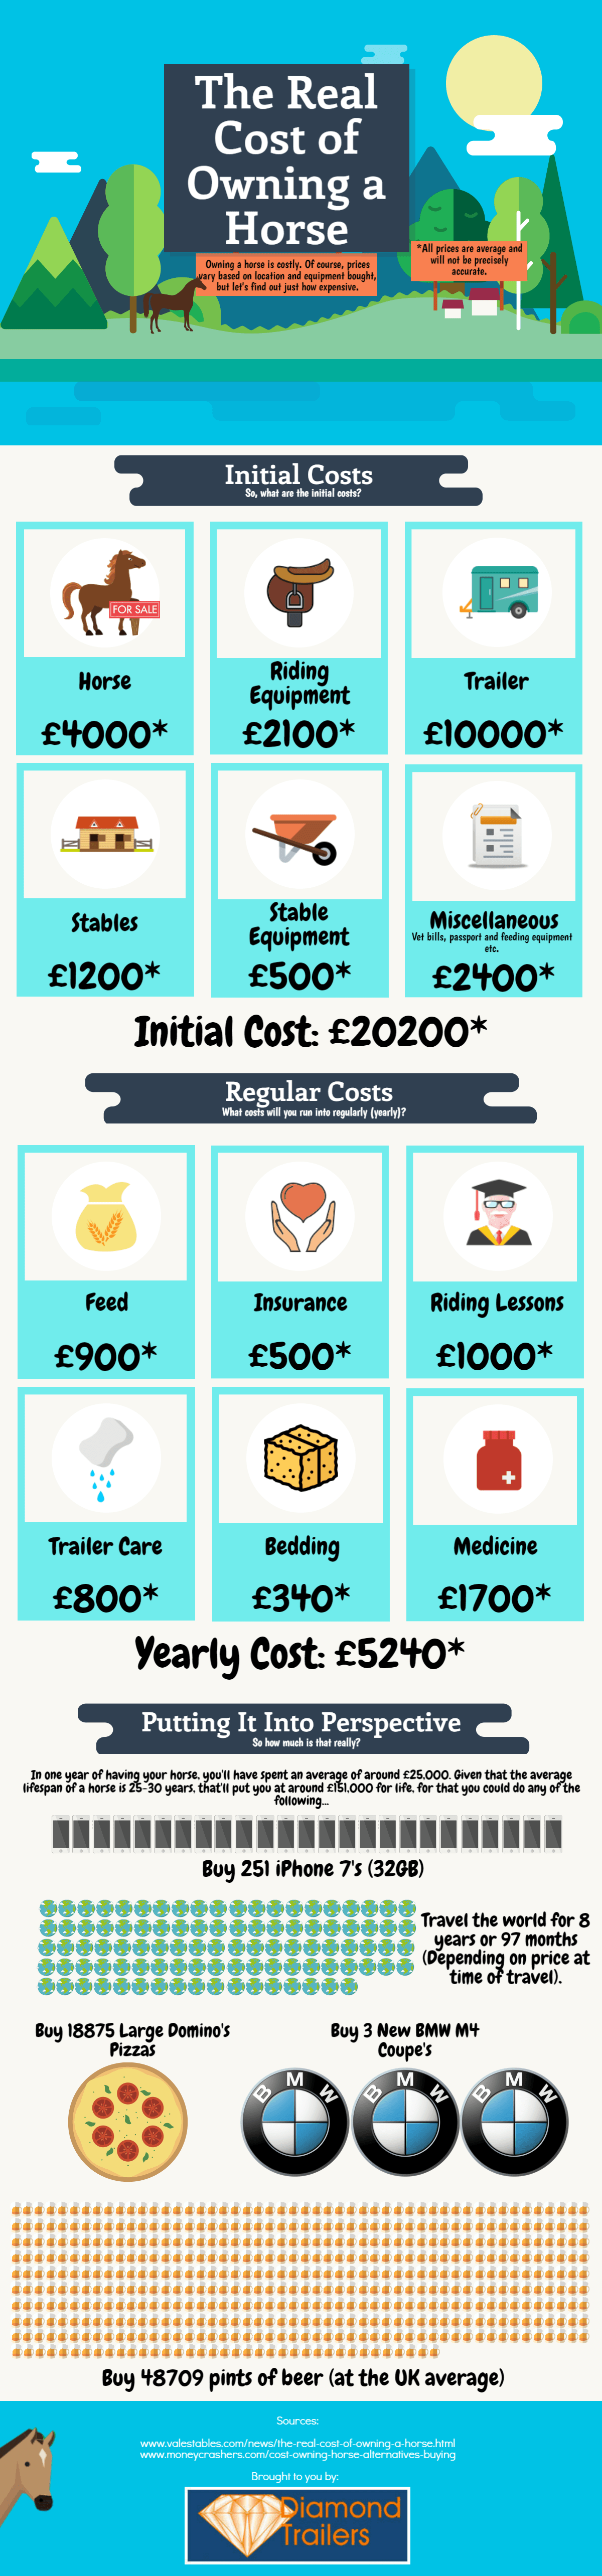 The Cost of Owning a Horse